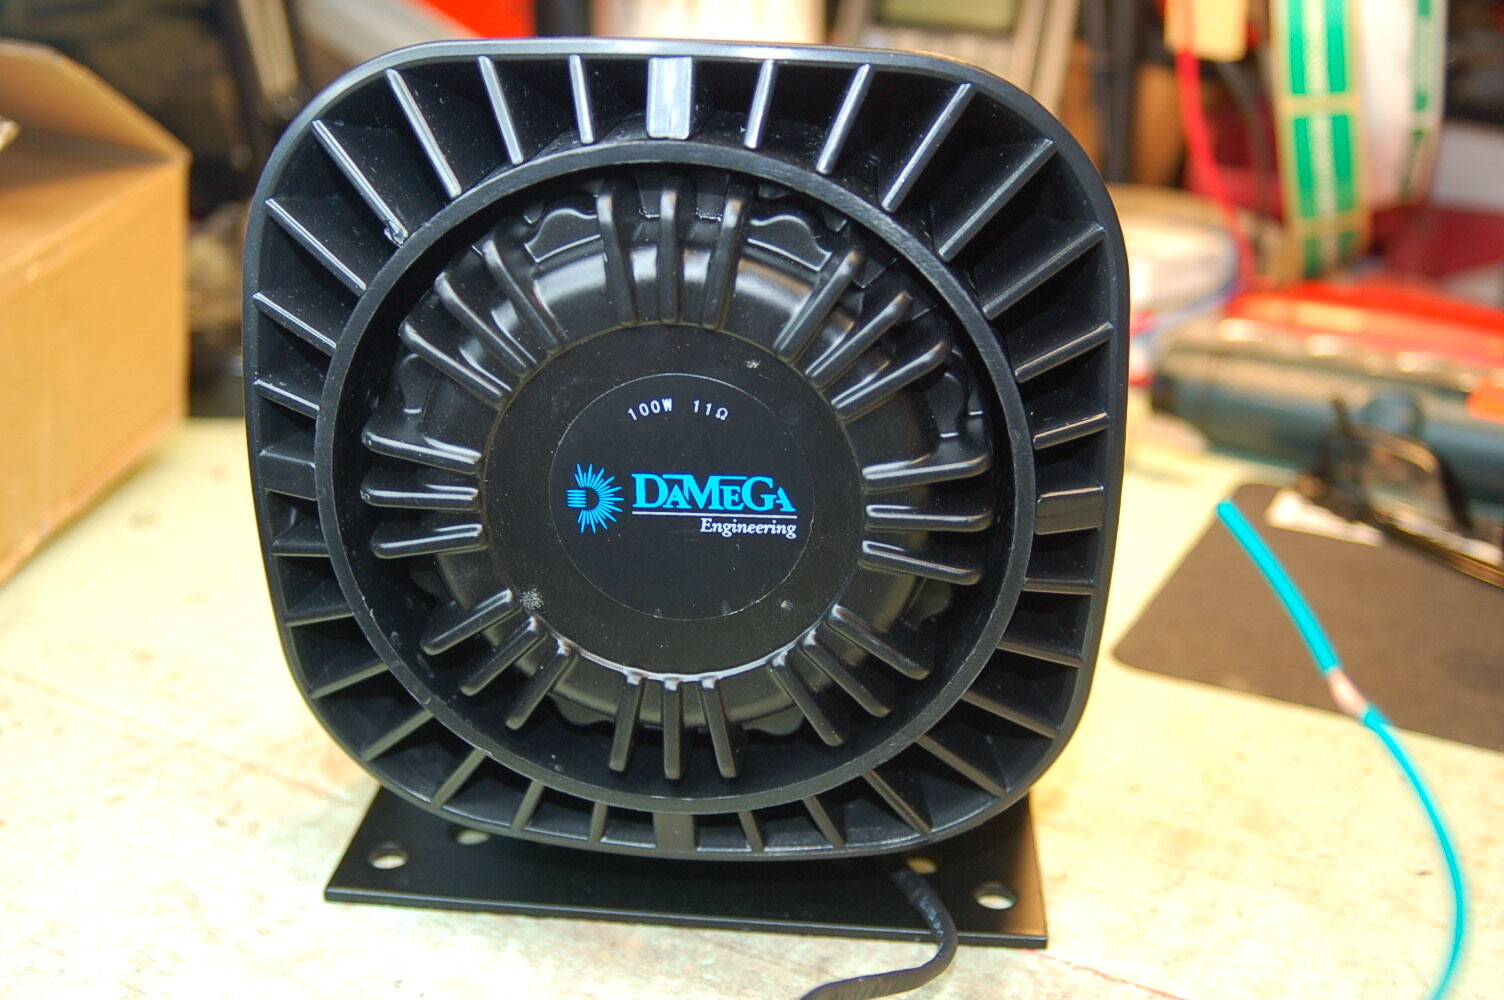 DaMega Growler Siren Speaker 100 watt 11ohm compact  ShoMe Code3 Federal Signal